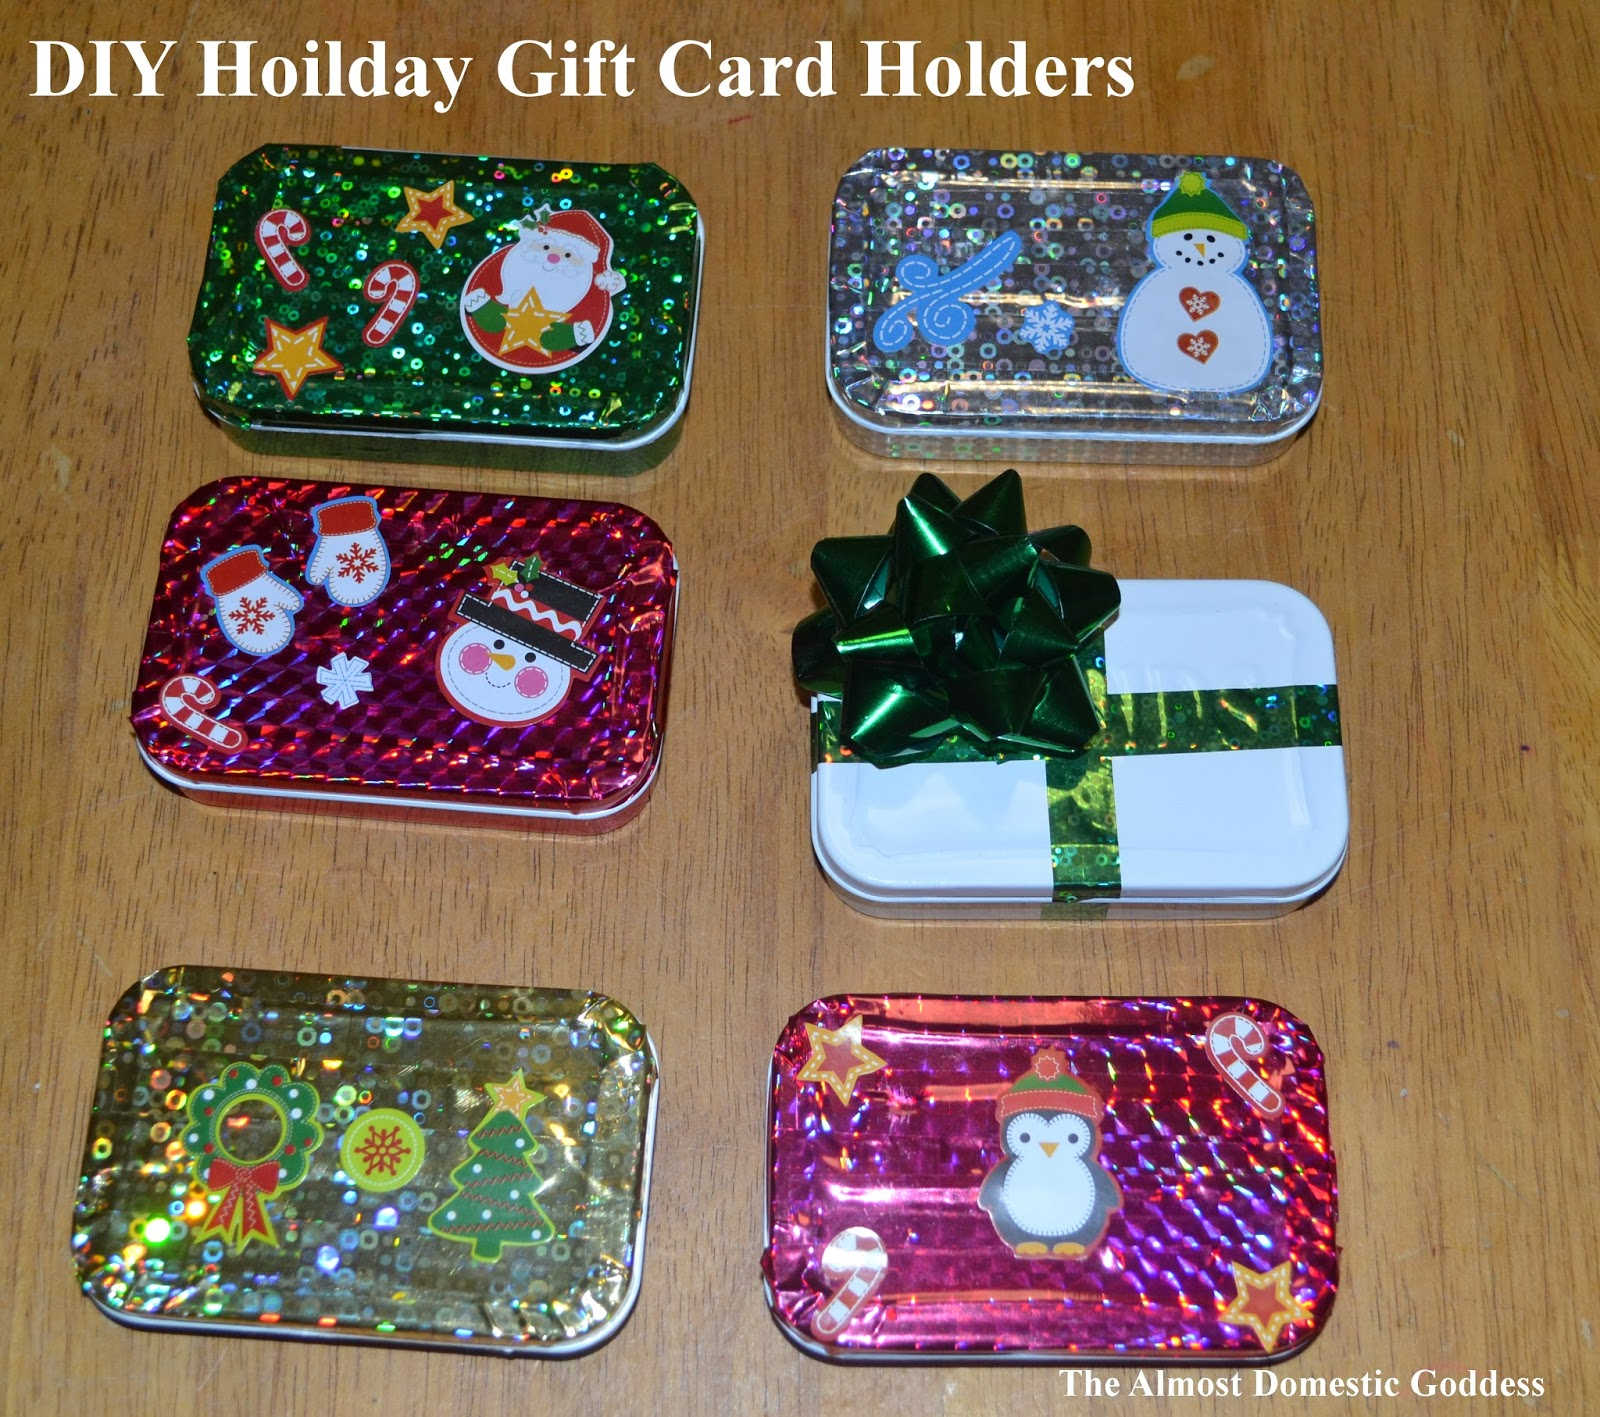 Diy Christmas Gift Card Holder: The Almost Domestic Goddess: DIY Holiday Gift Card Holders